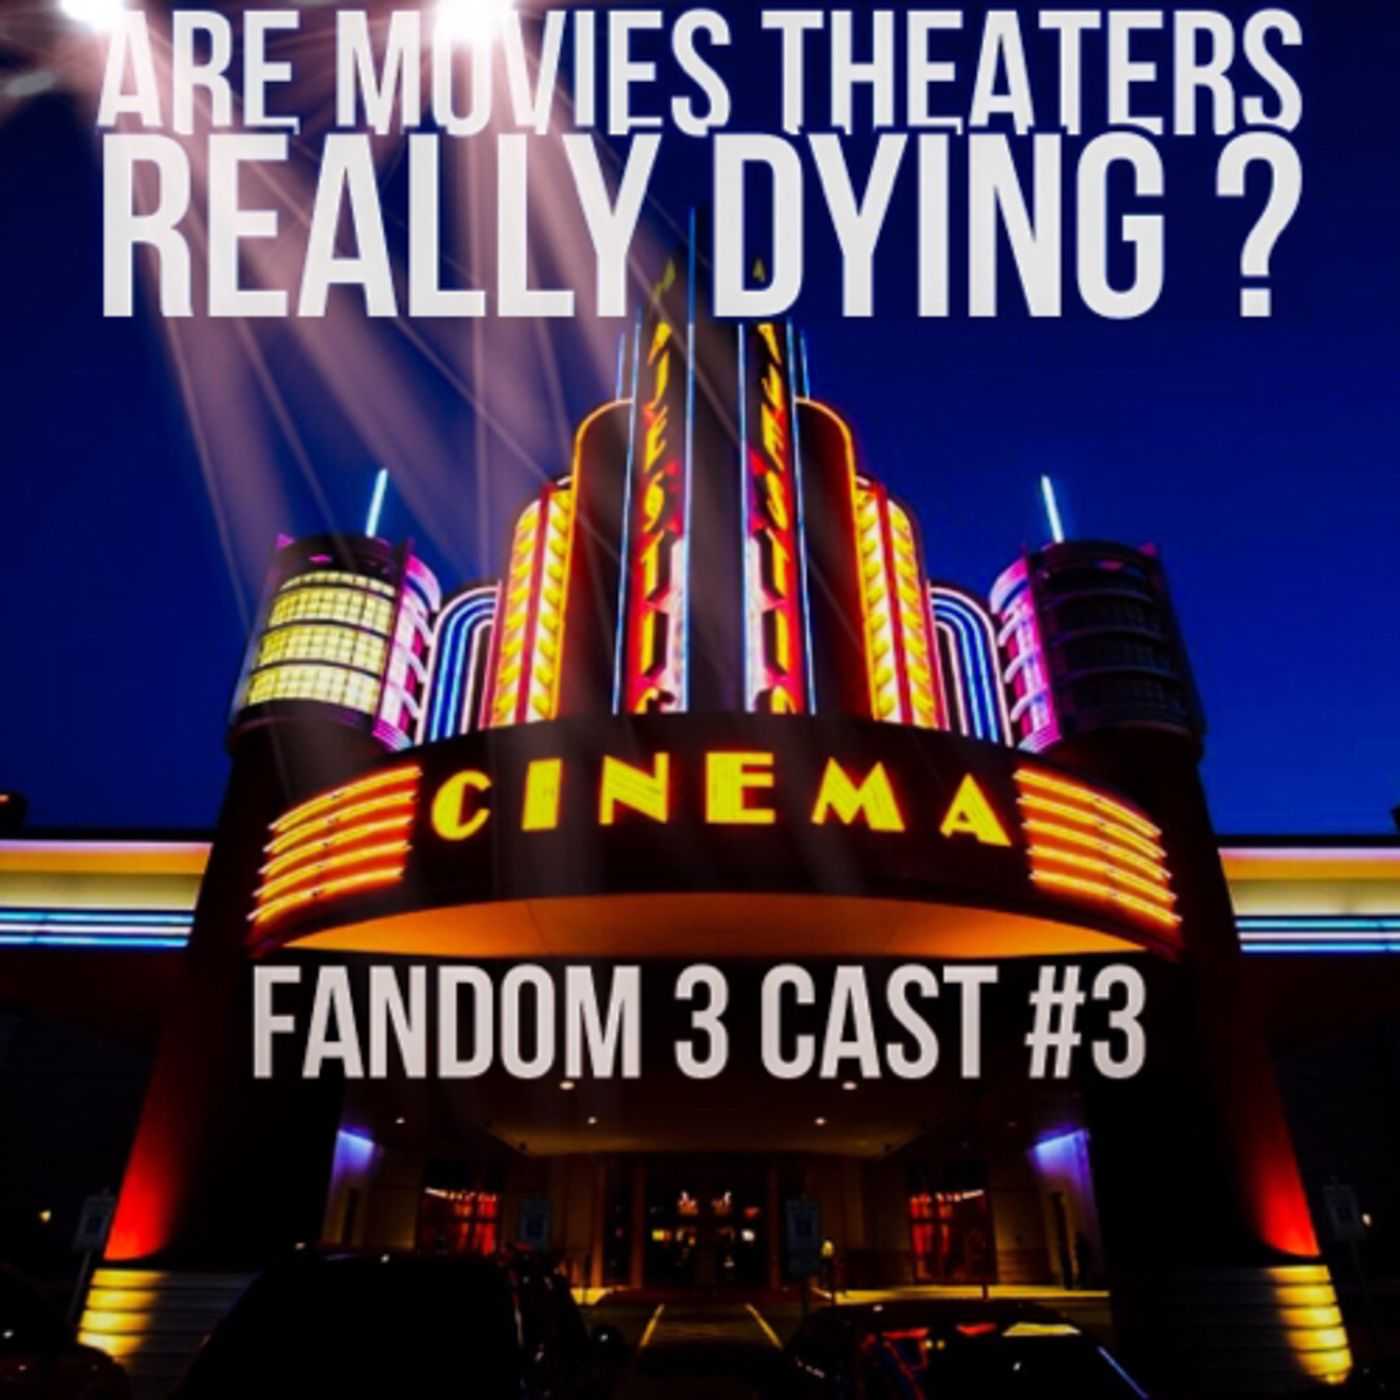 ARE MOVIE THEATERS REALLY DYING ? (EPISODE 3)